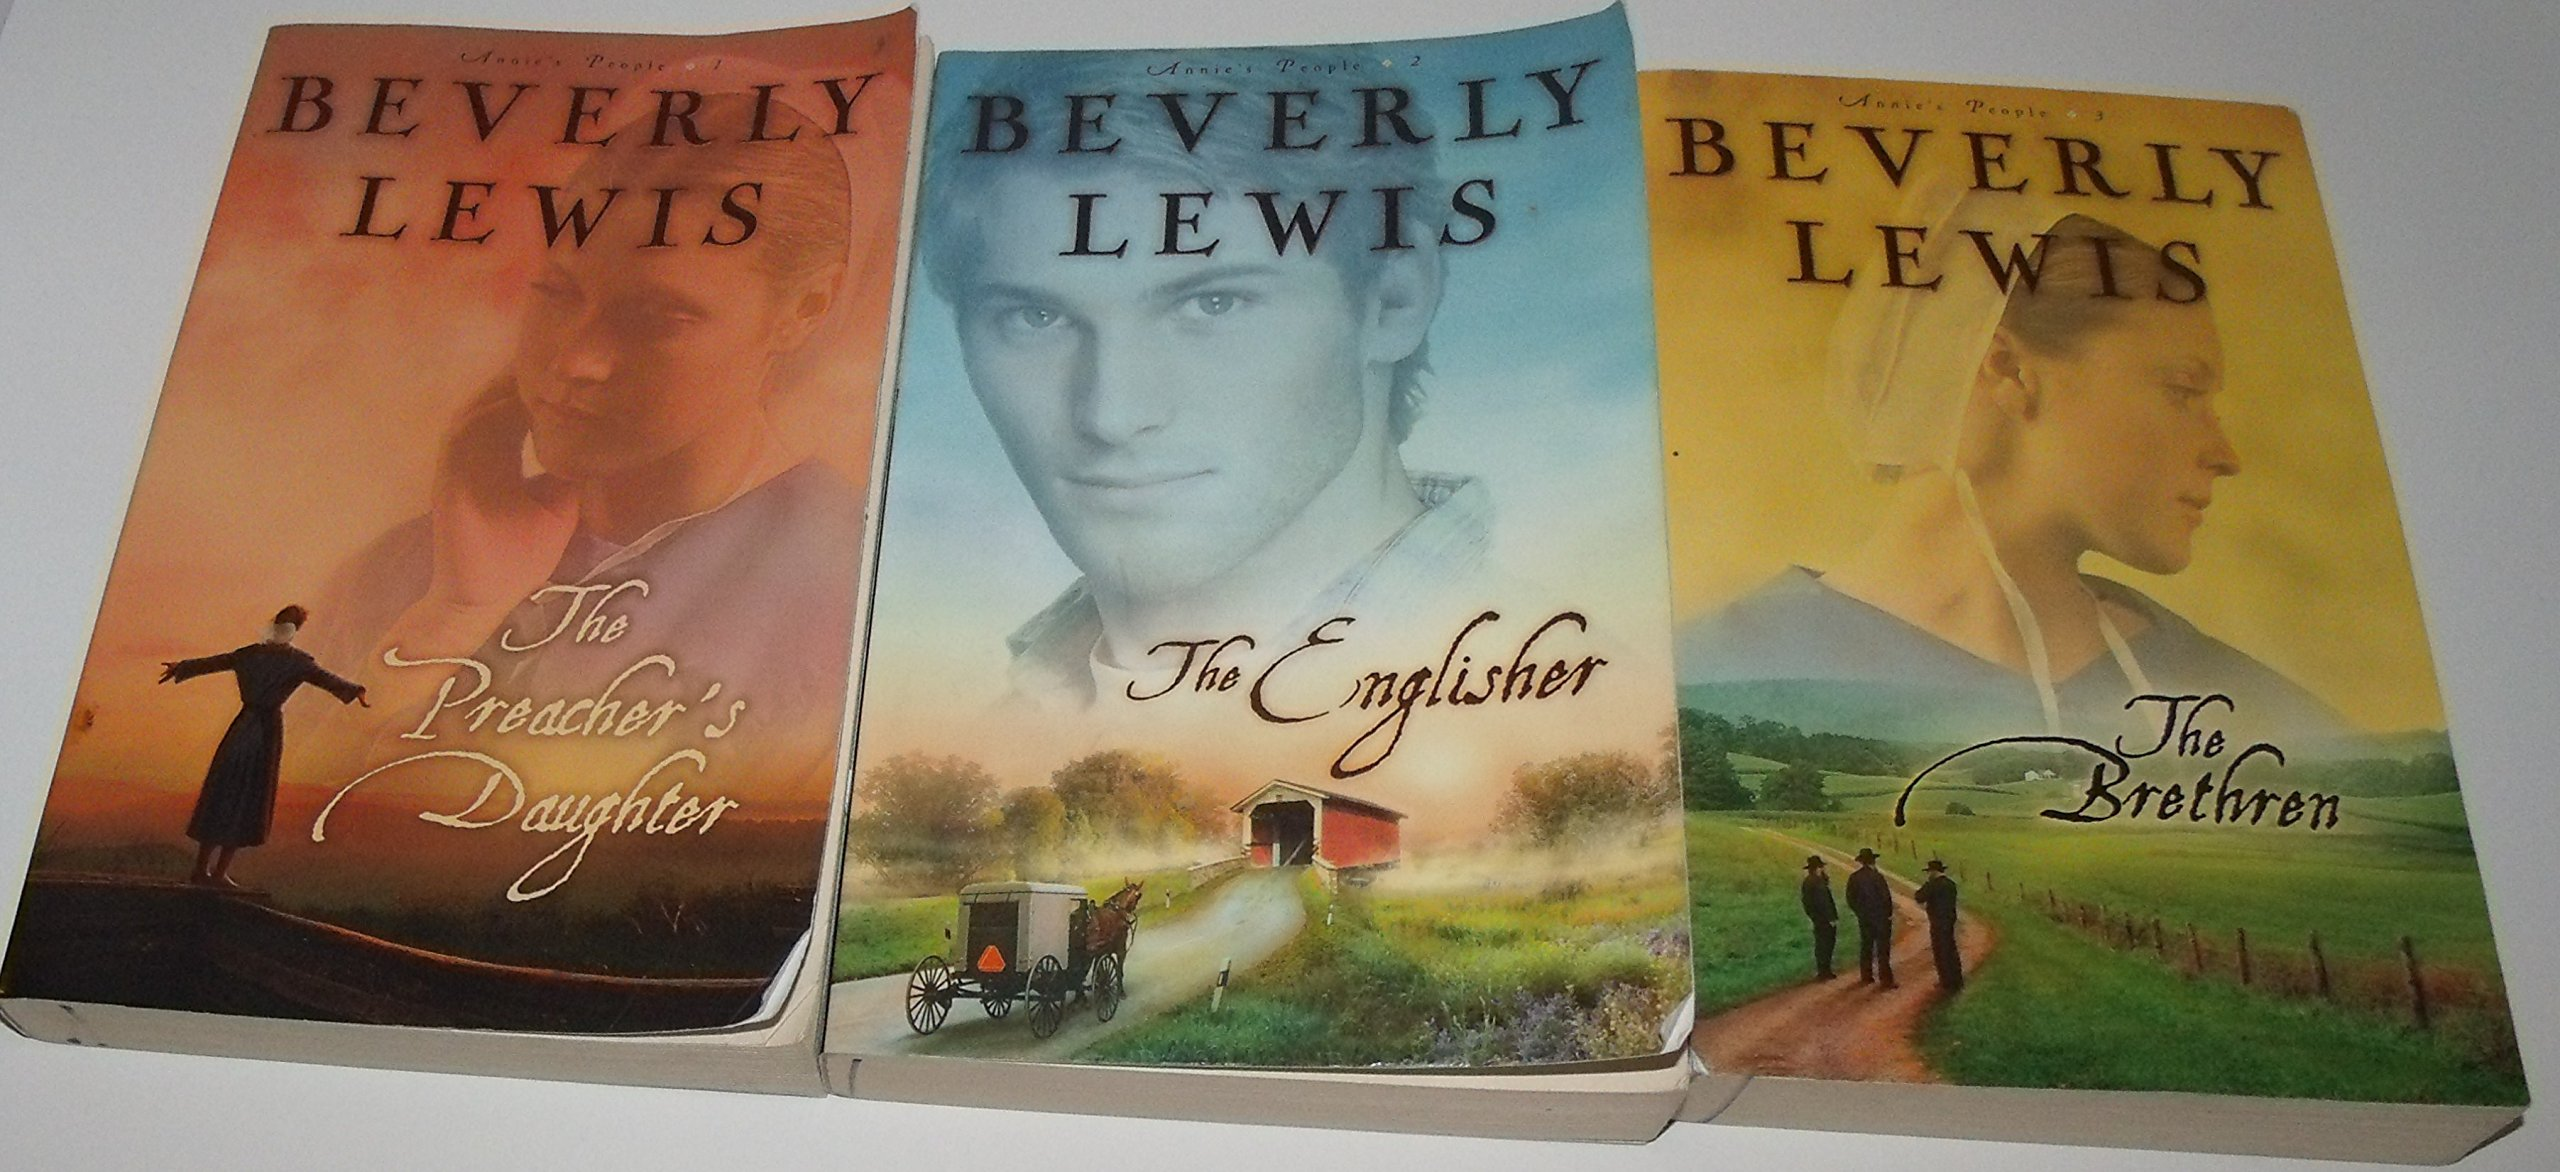 Download Author Beverly Lewis Three Book Bundle Of The Annie's People Series Includes: The Preacher's Daughter - The Englisher - The Brethren pdf